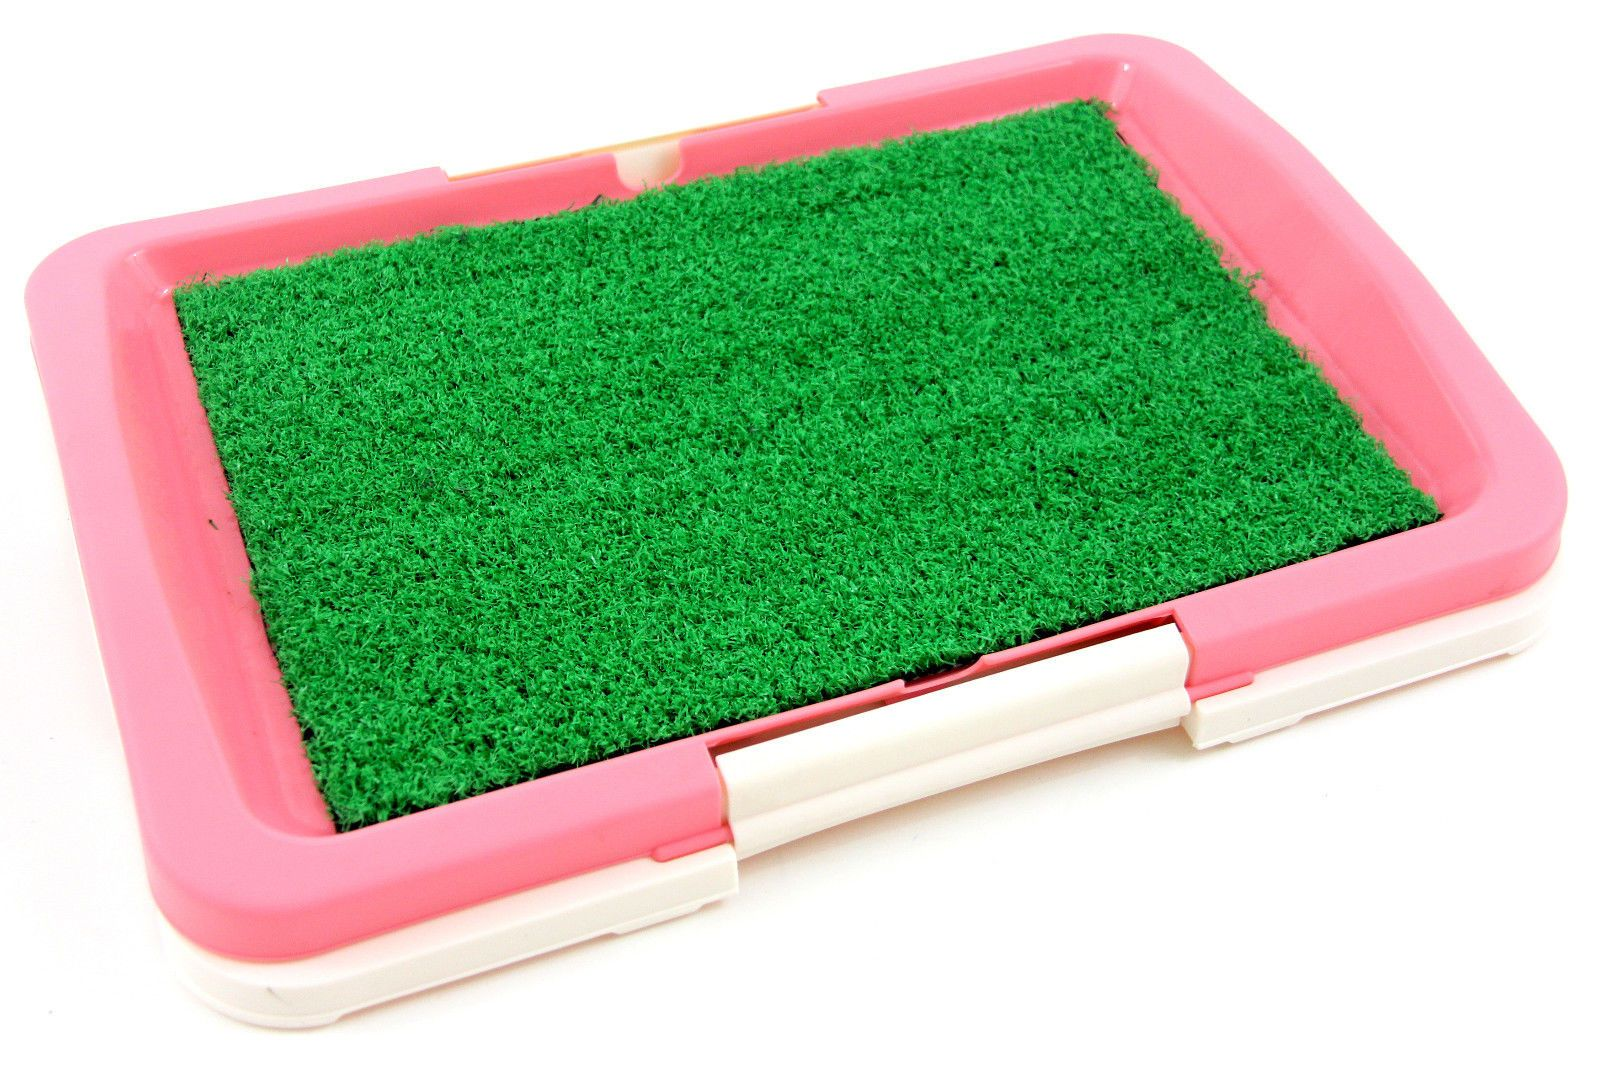 Puppy potty grass mat dog trainer indoor pee pad pink pet